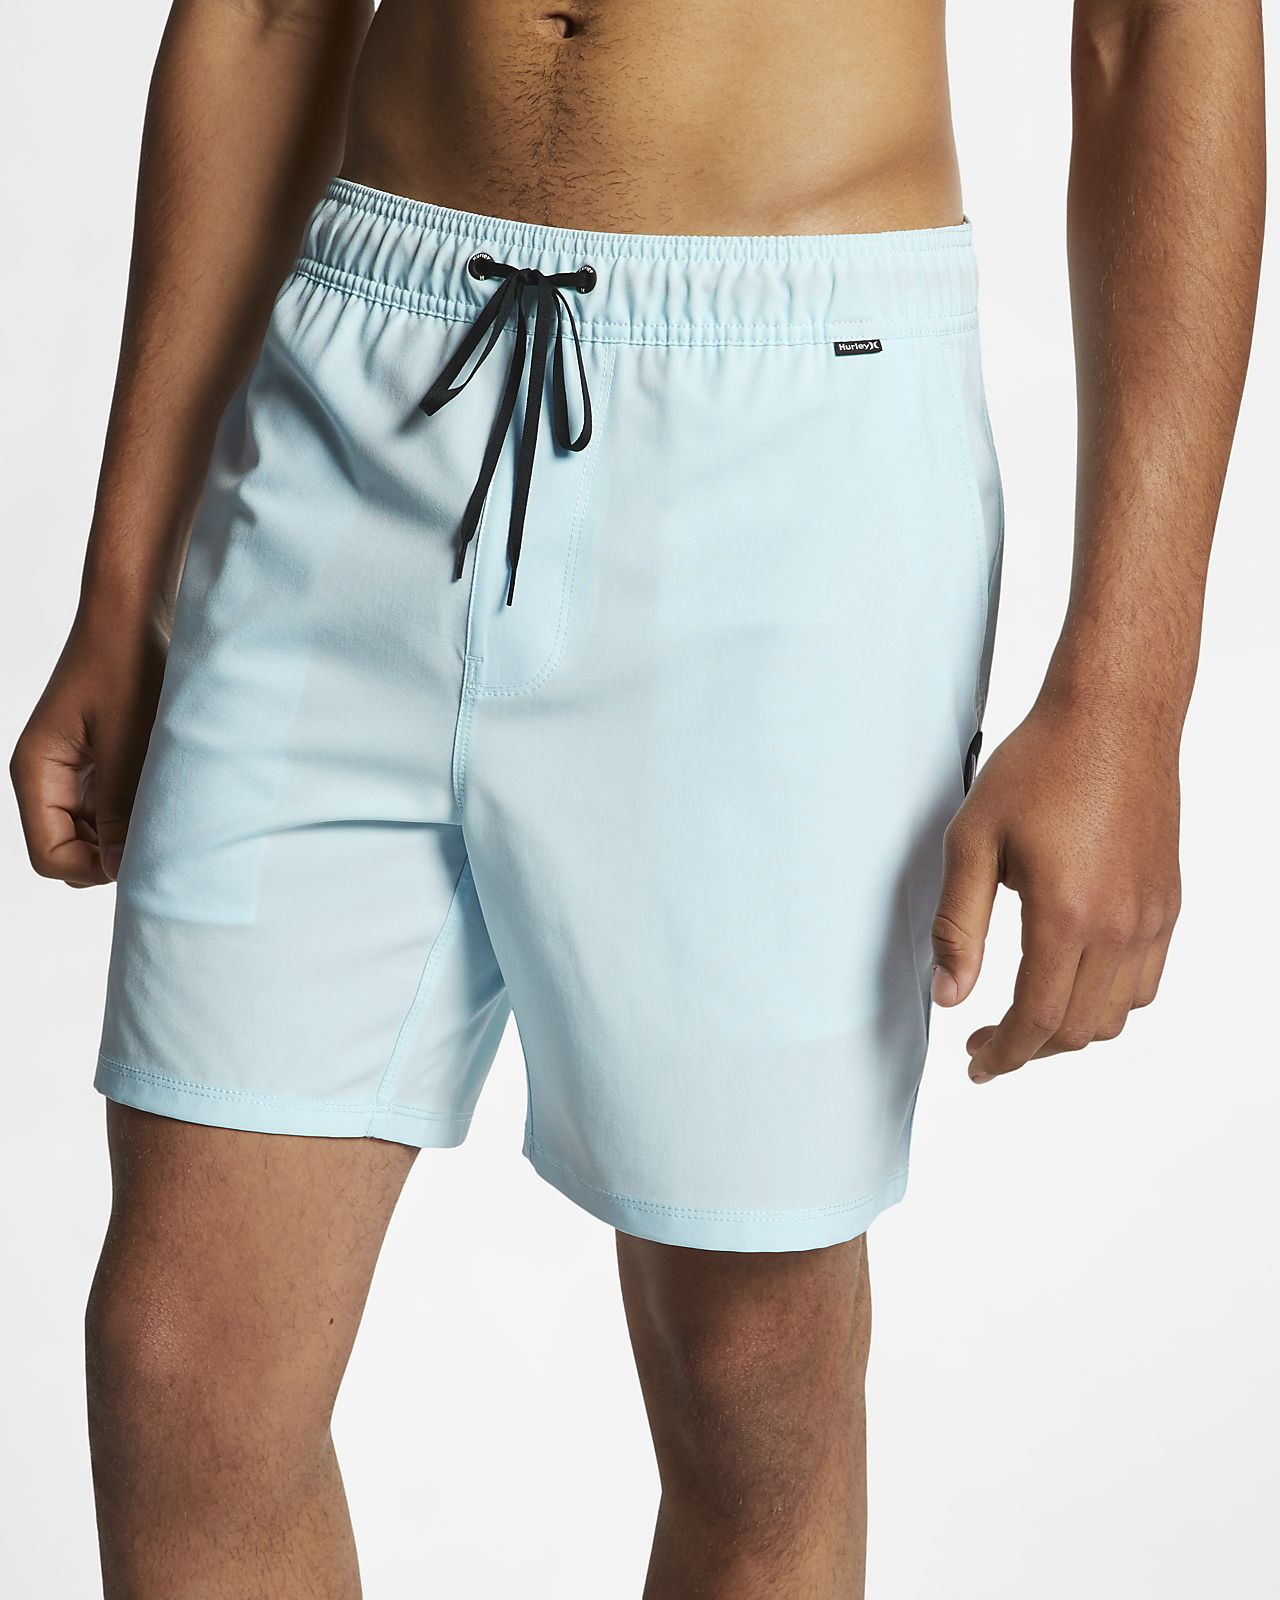 Shorts de playa de volleyball de 43 cm para hombre Hurley One And Only